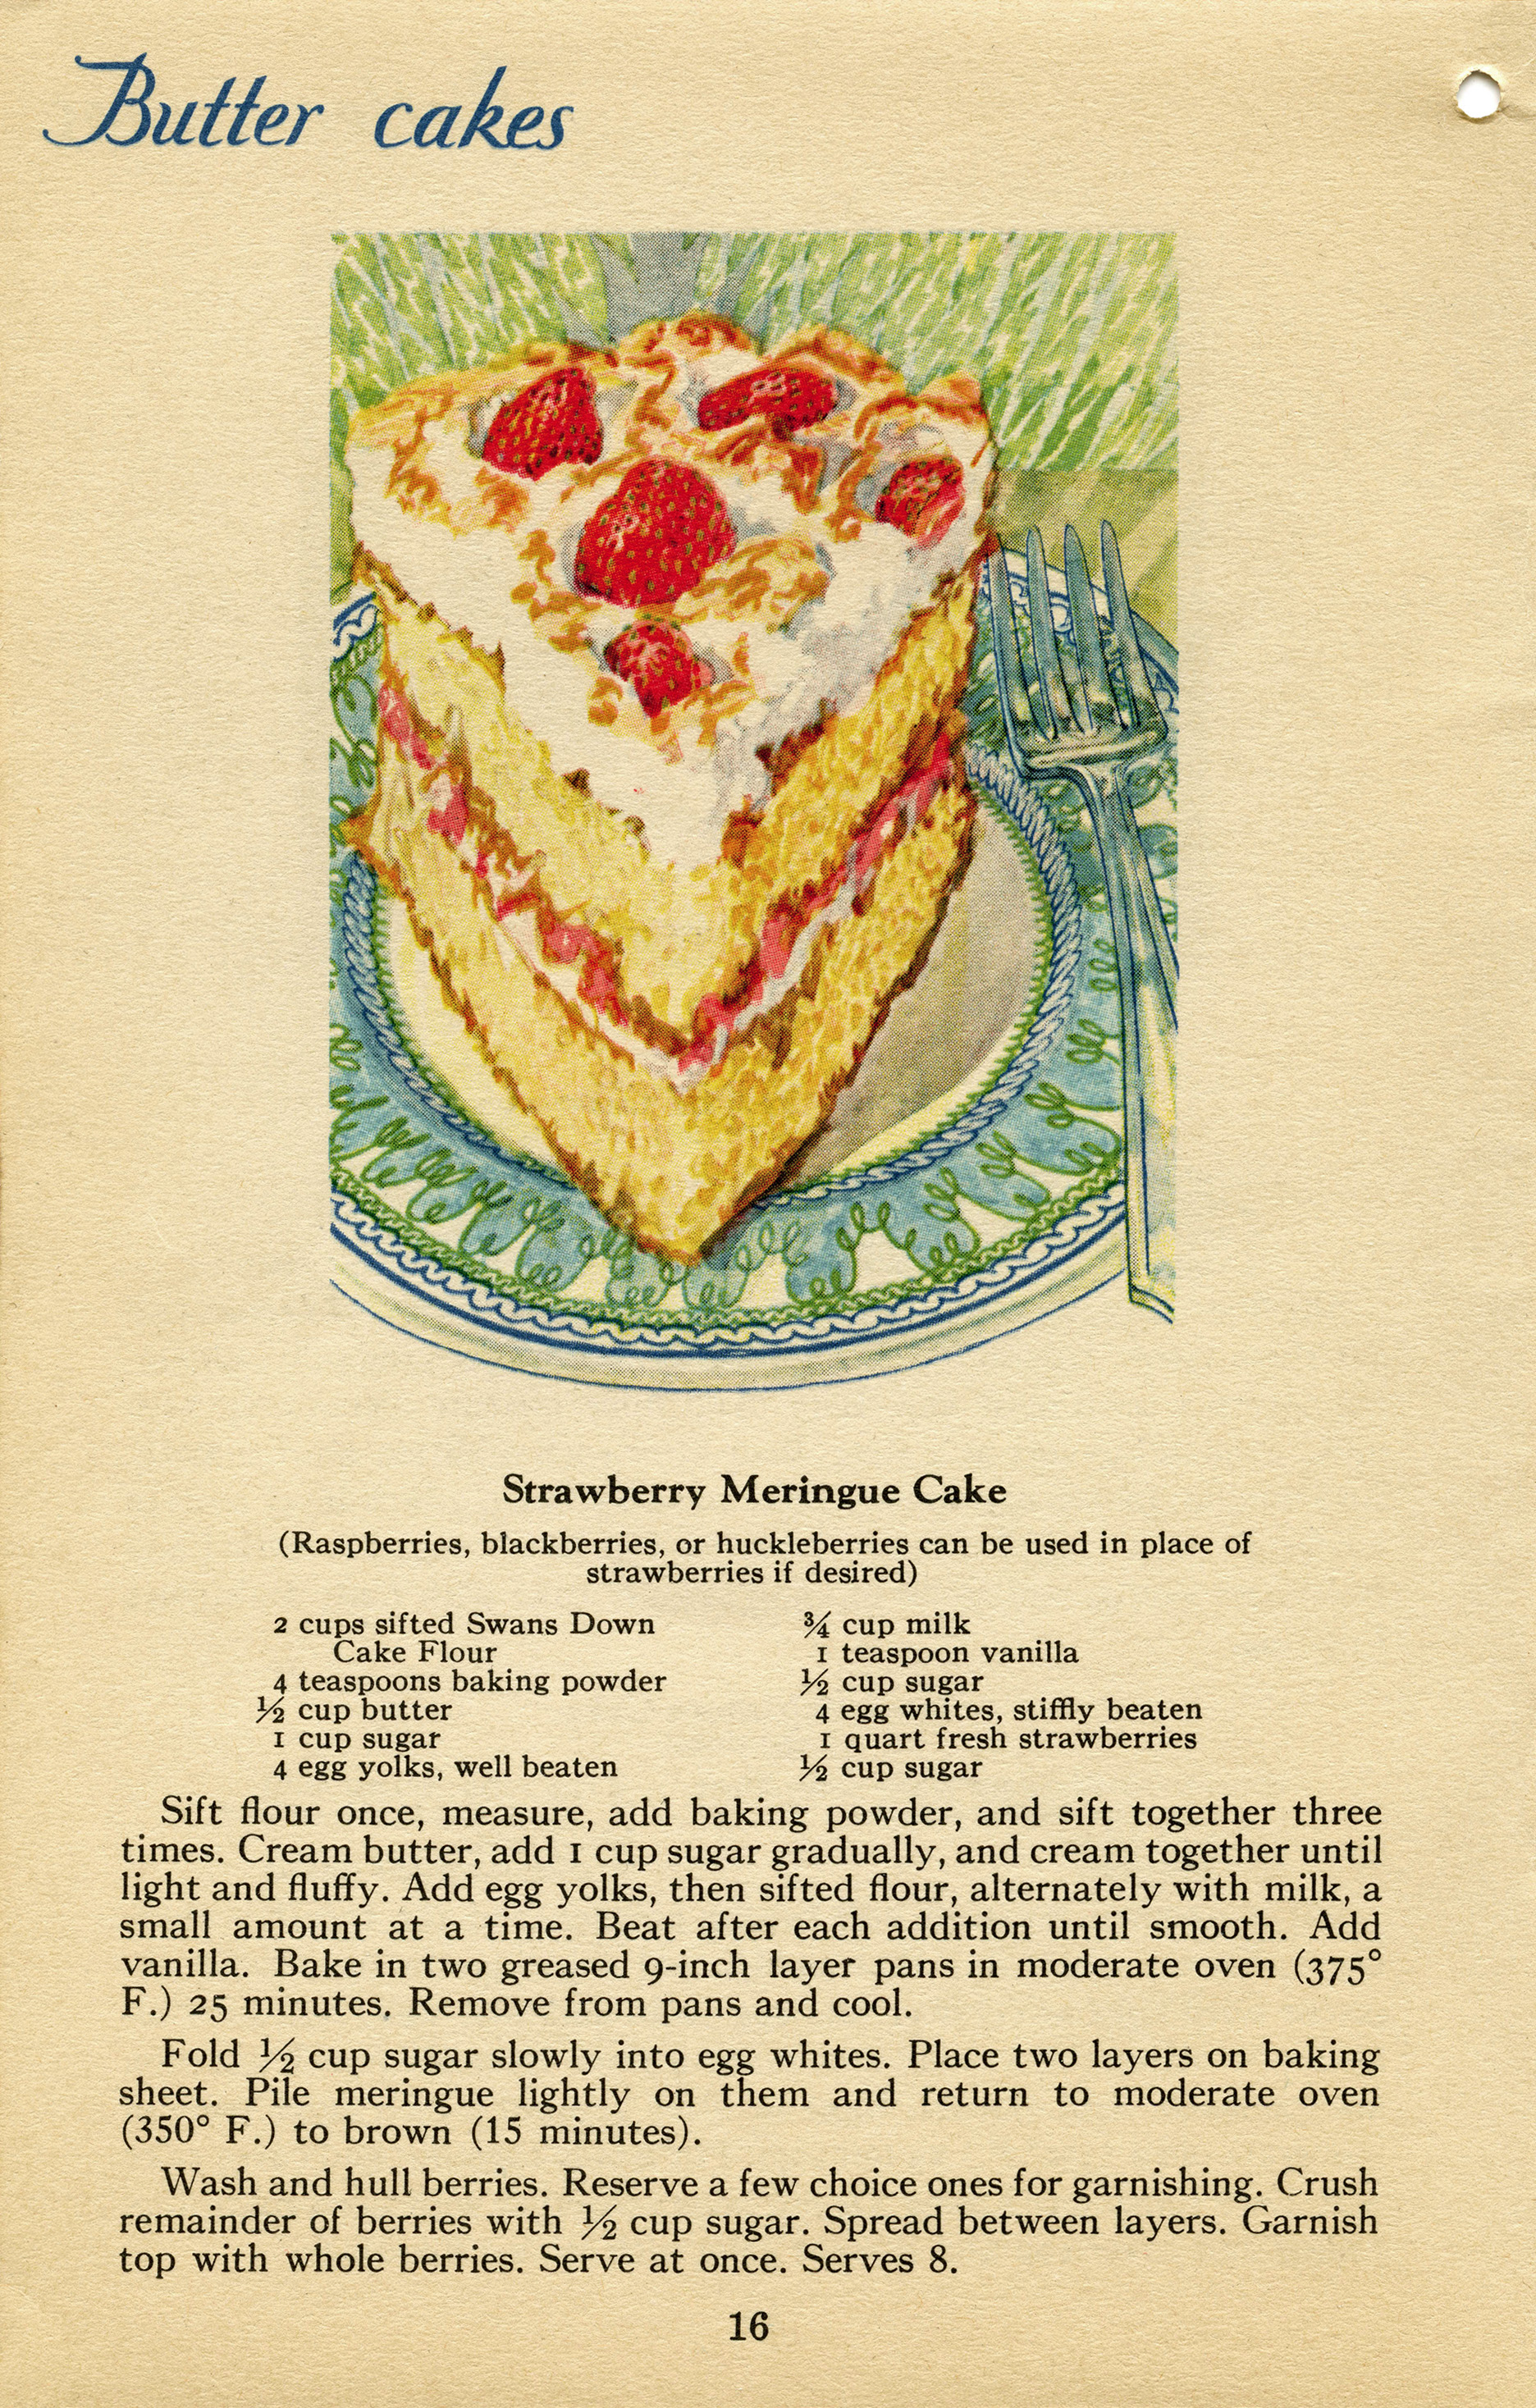 Free Cake Design Books : Strawberry Meringue Cake ~ Free Vintage Graphics Old ...